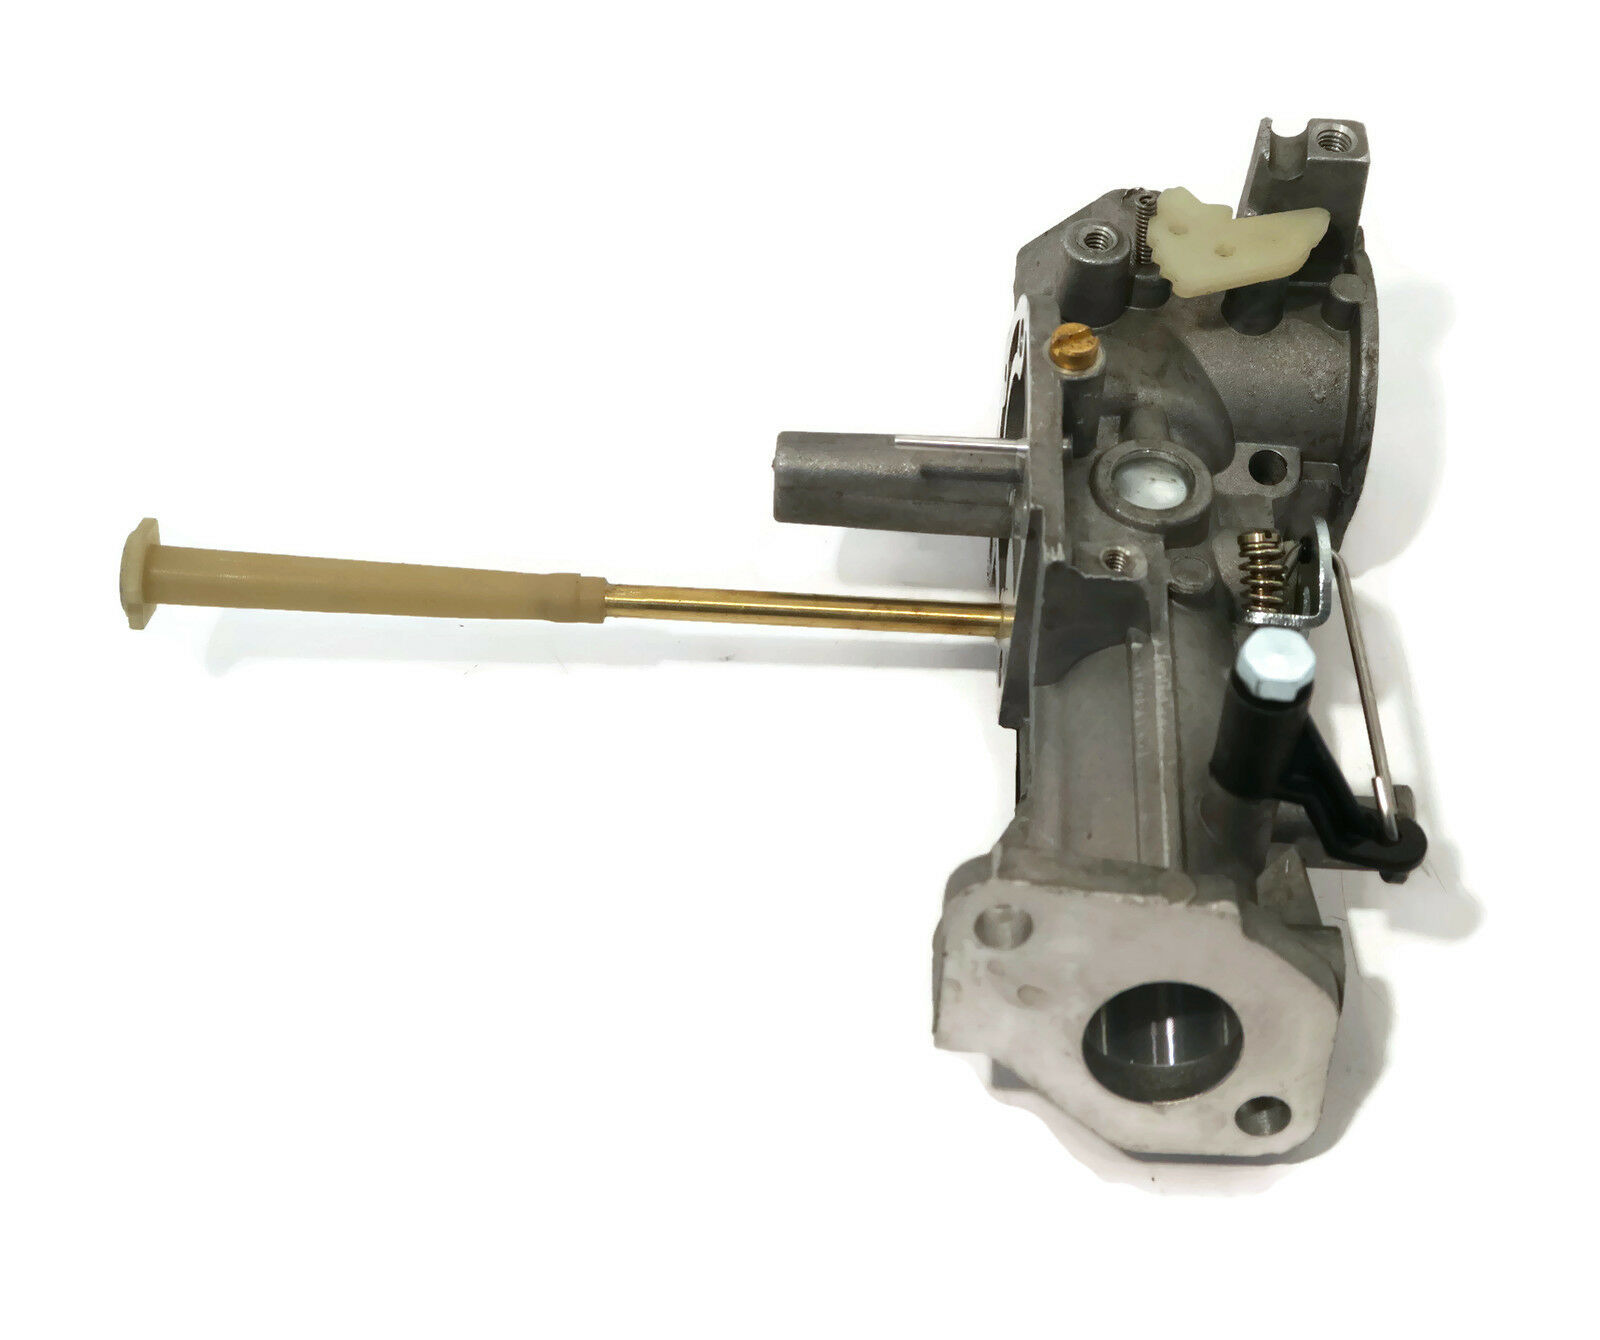 Briggs and Stratton 495181 carburetor